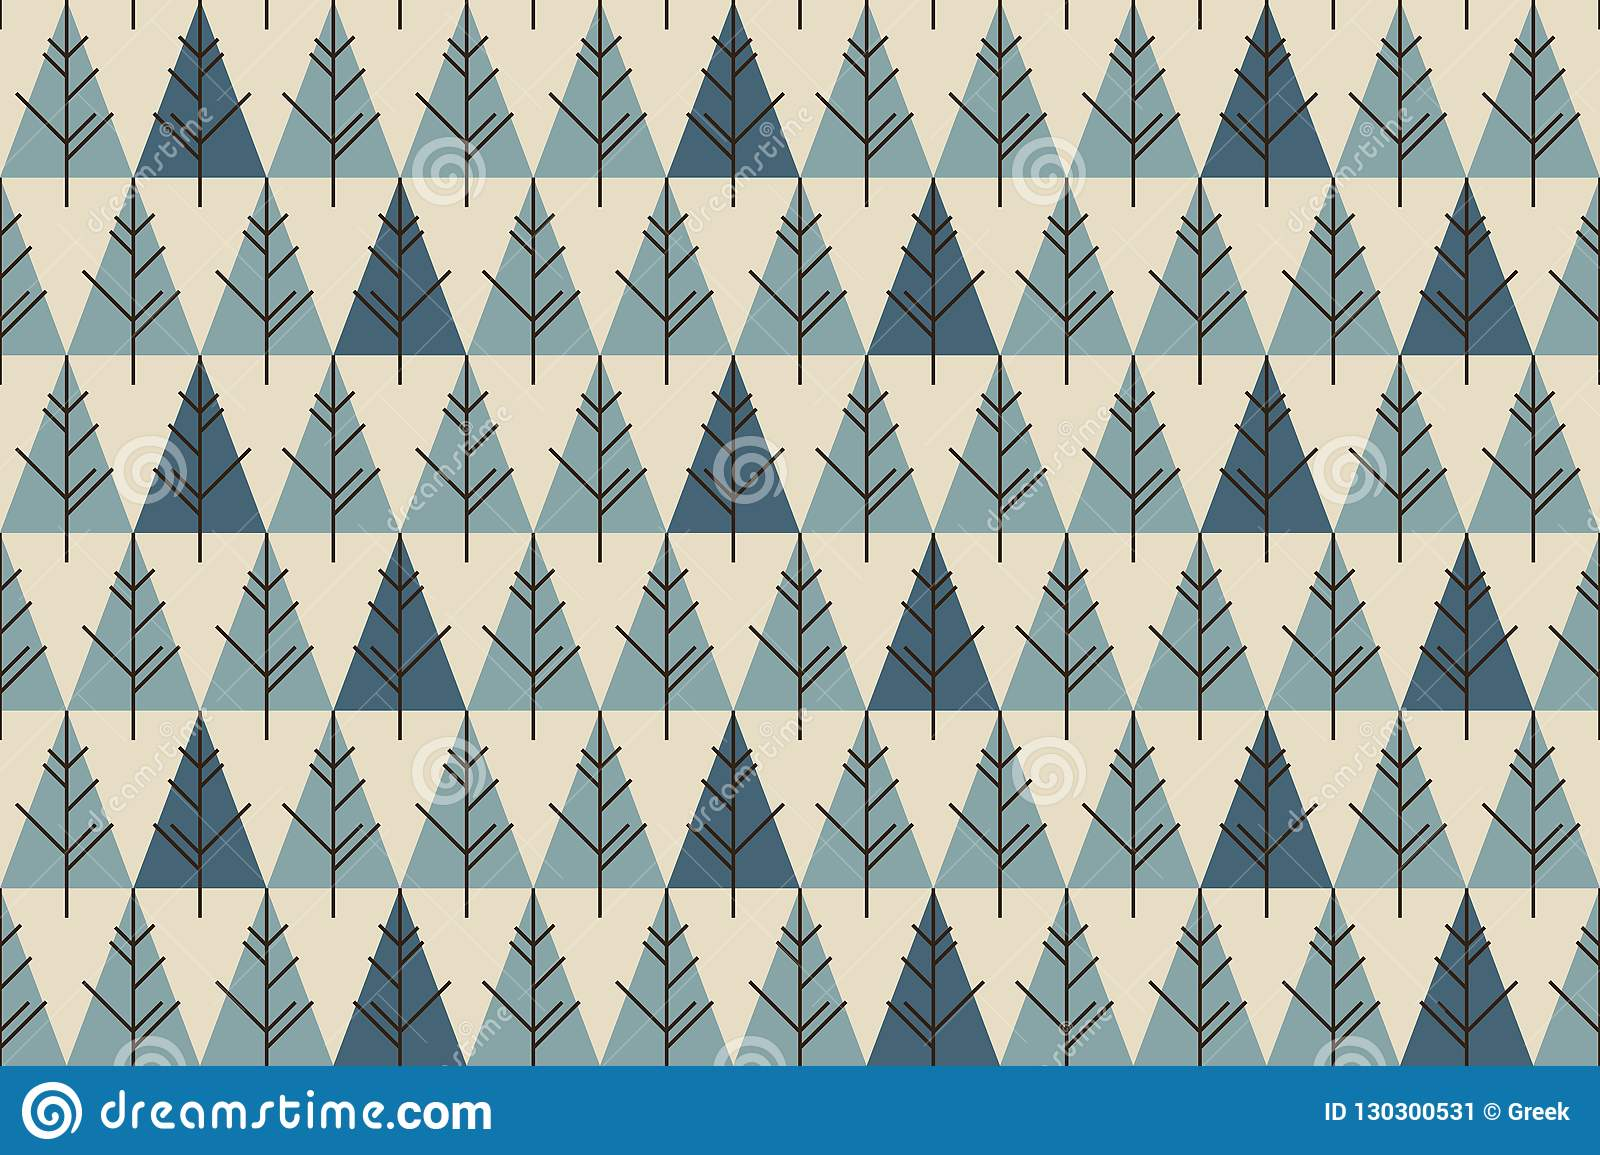 Abstract Christmas trees seamless pattern